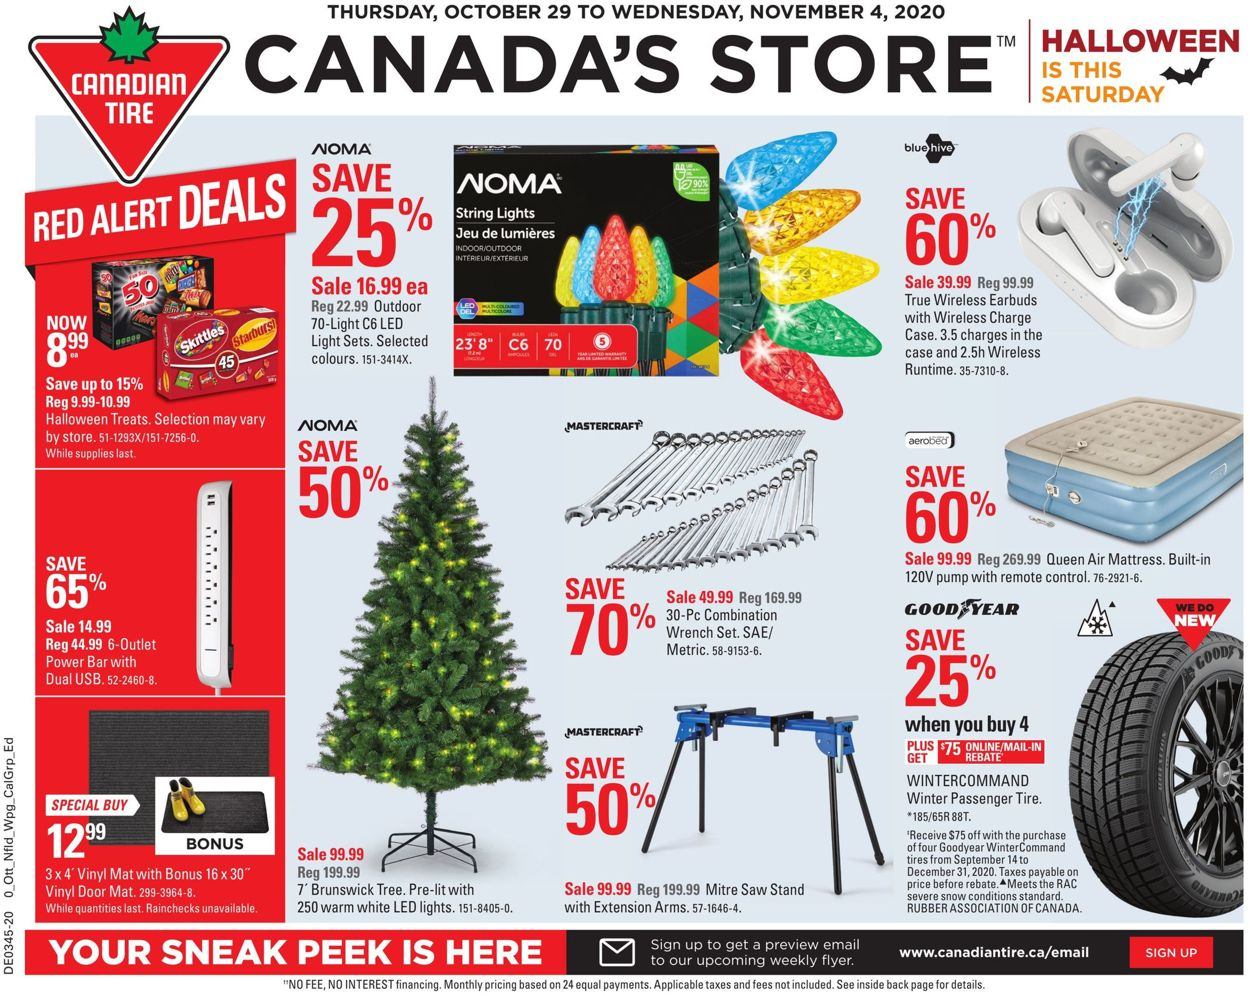 Canadian Tire Flyer - 10/29-11/04/2020